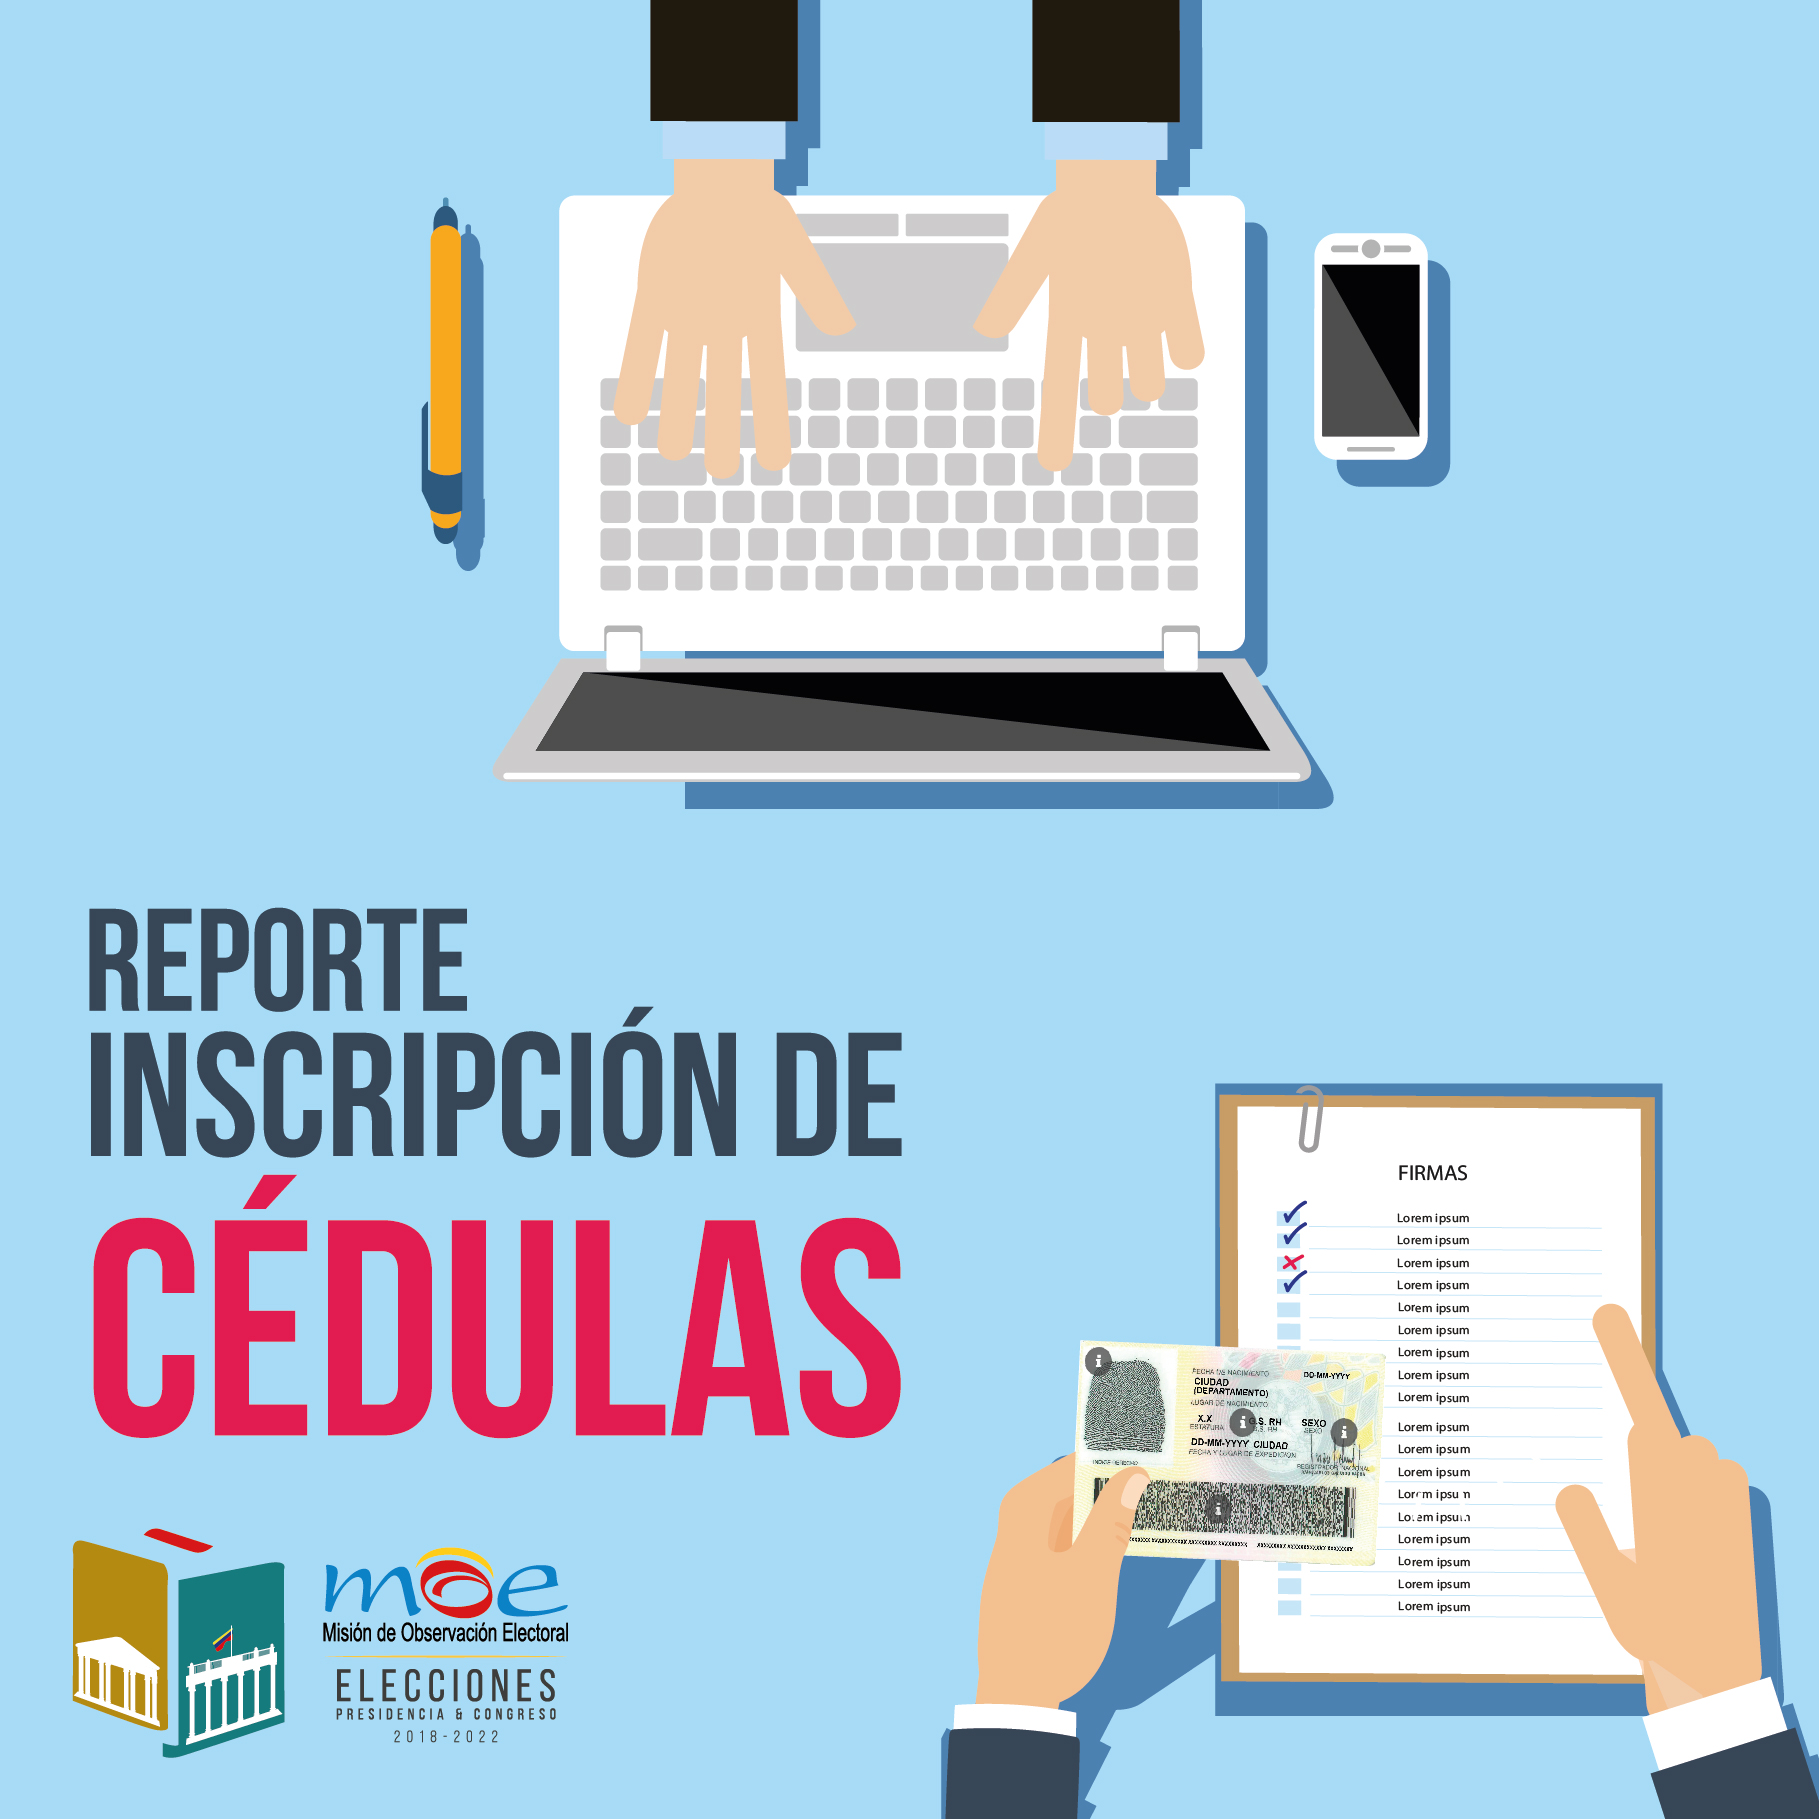 Inscripcion De Cedulas